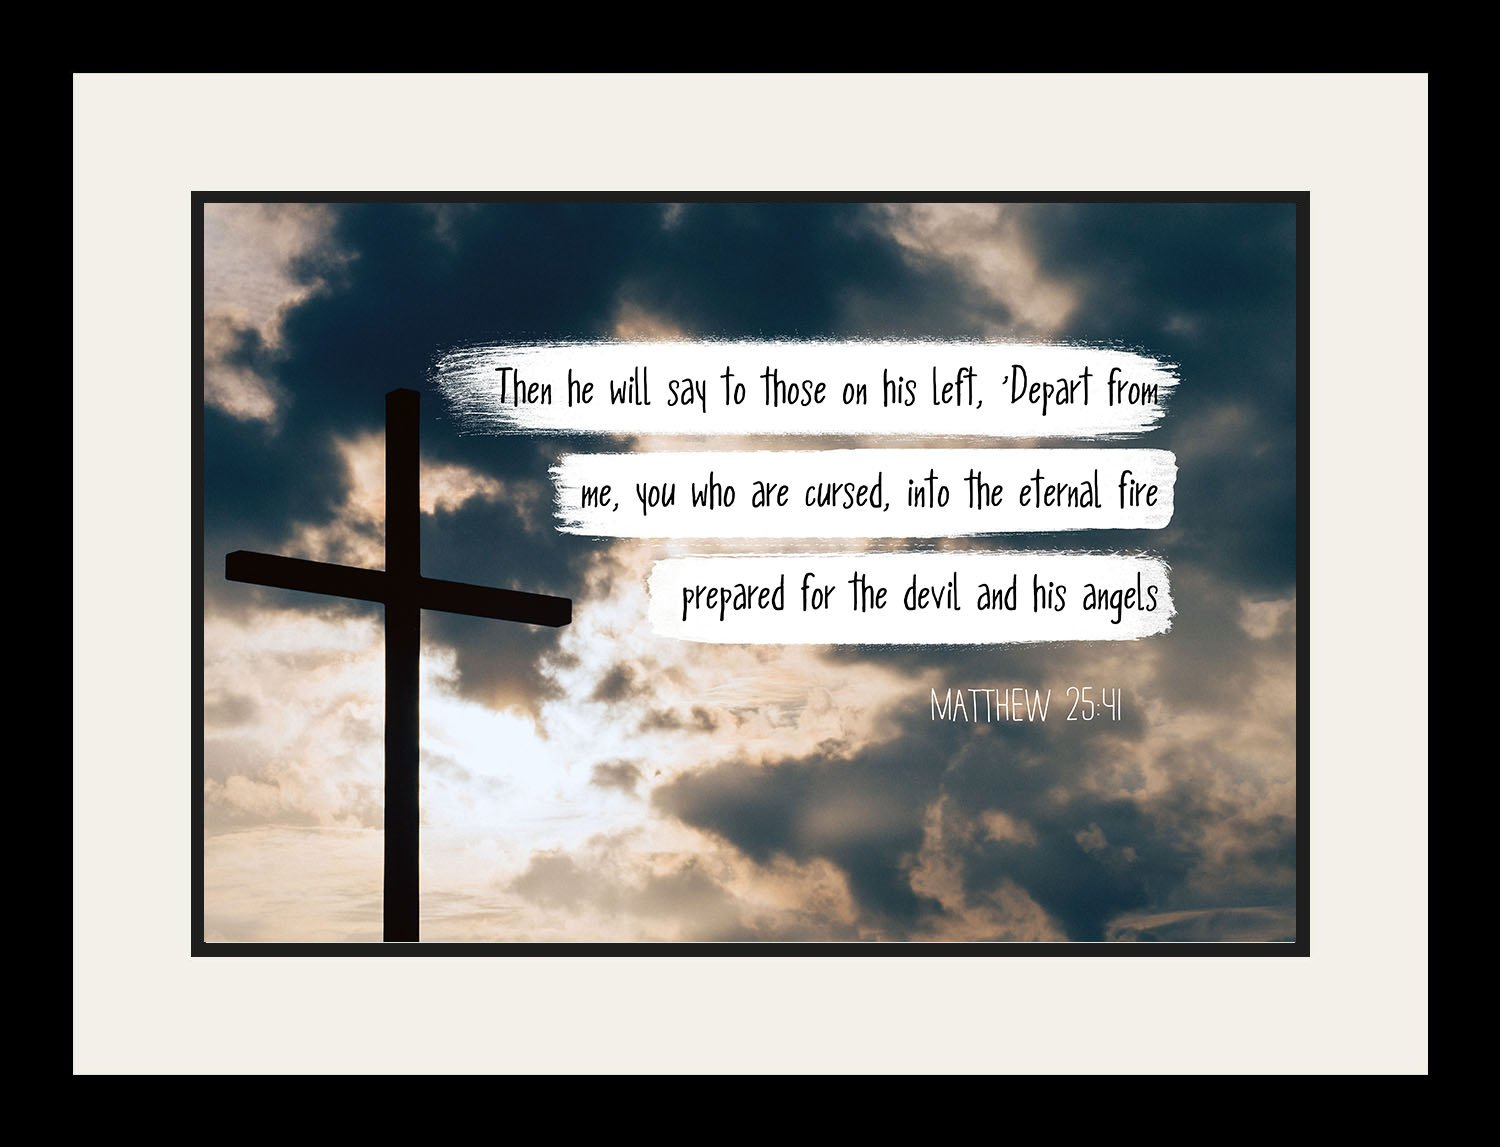 Matthew 25:41 You who are cursed, - Christian Poster, Print, Picture or Framed Wall Art Decor - Bible Verse Collection - Religious Gift for Holidays Christmas Baptism (19x25 Framed)